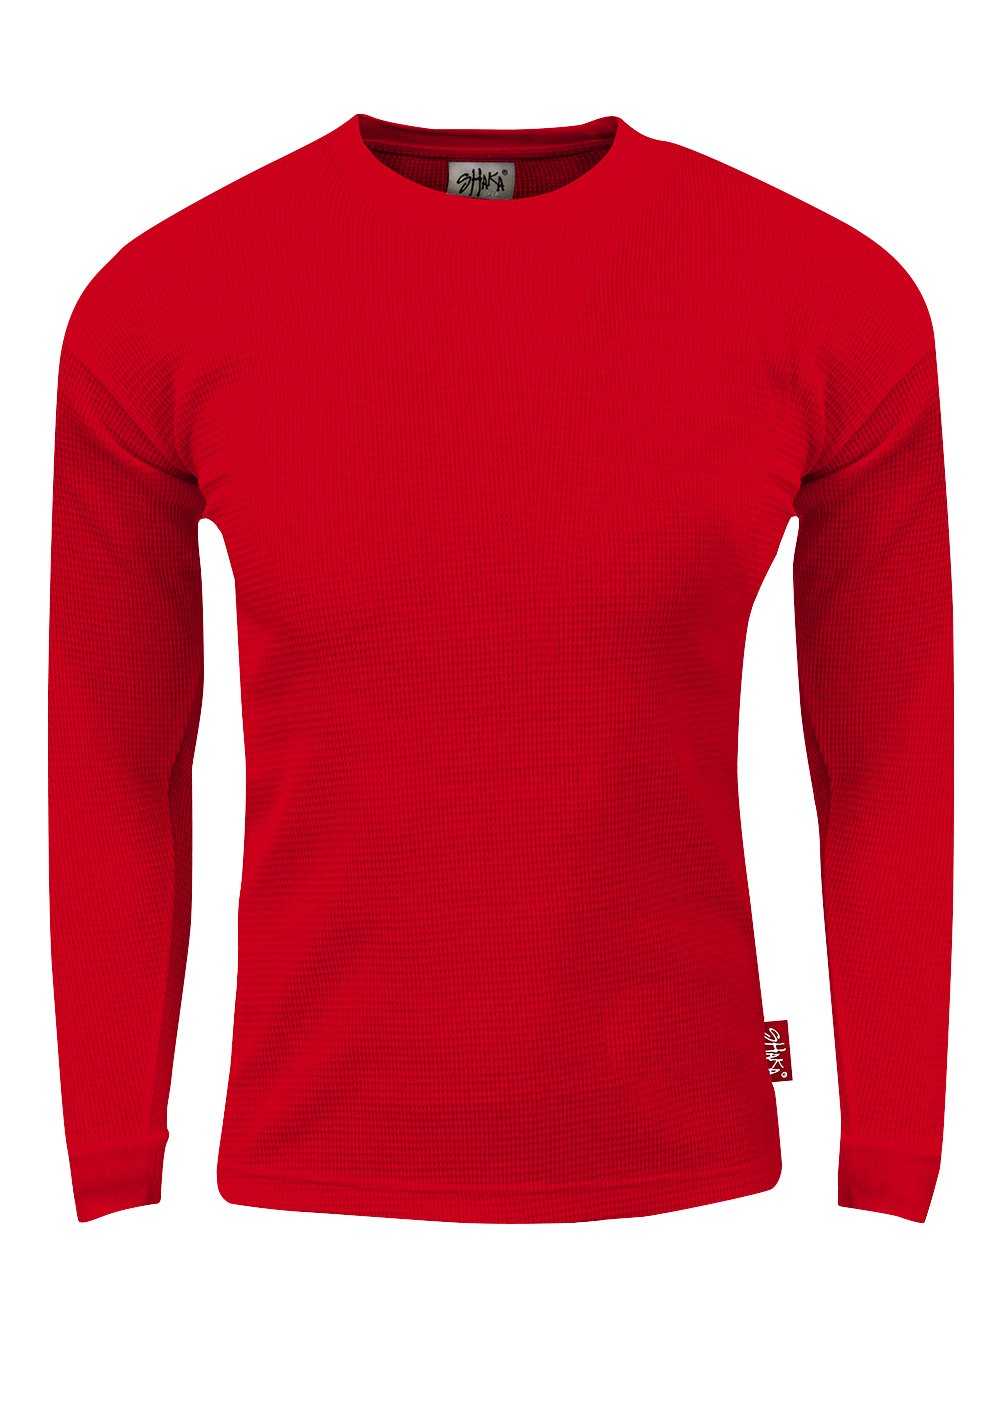 TC10_S Thermal Long Sleeve Crewneck Waffle Shirt Red S by Fitscloth